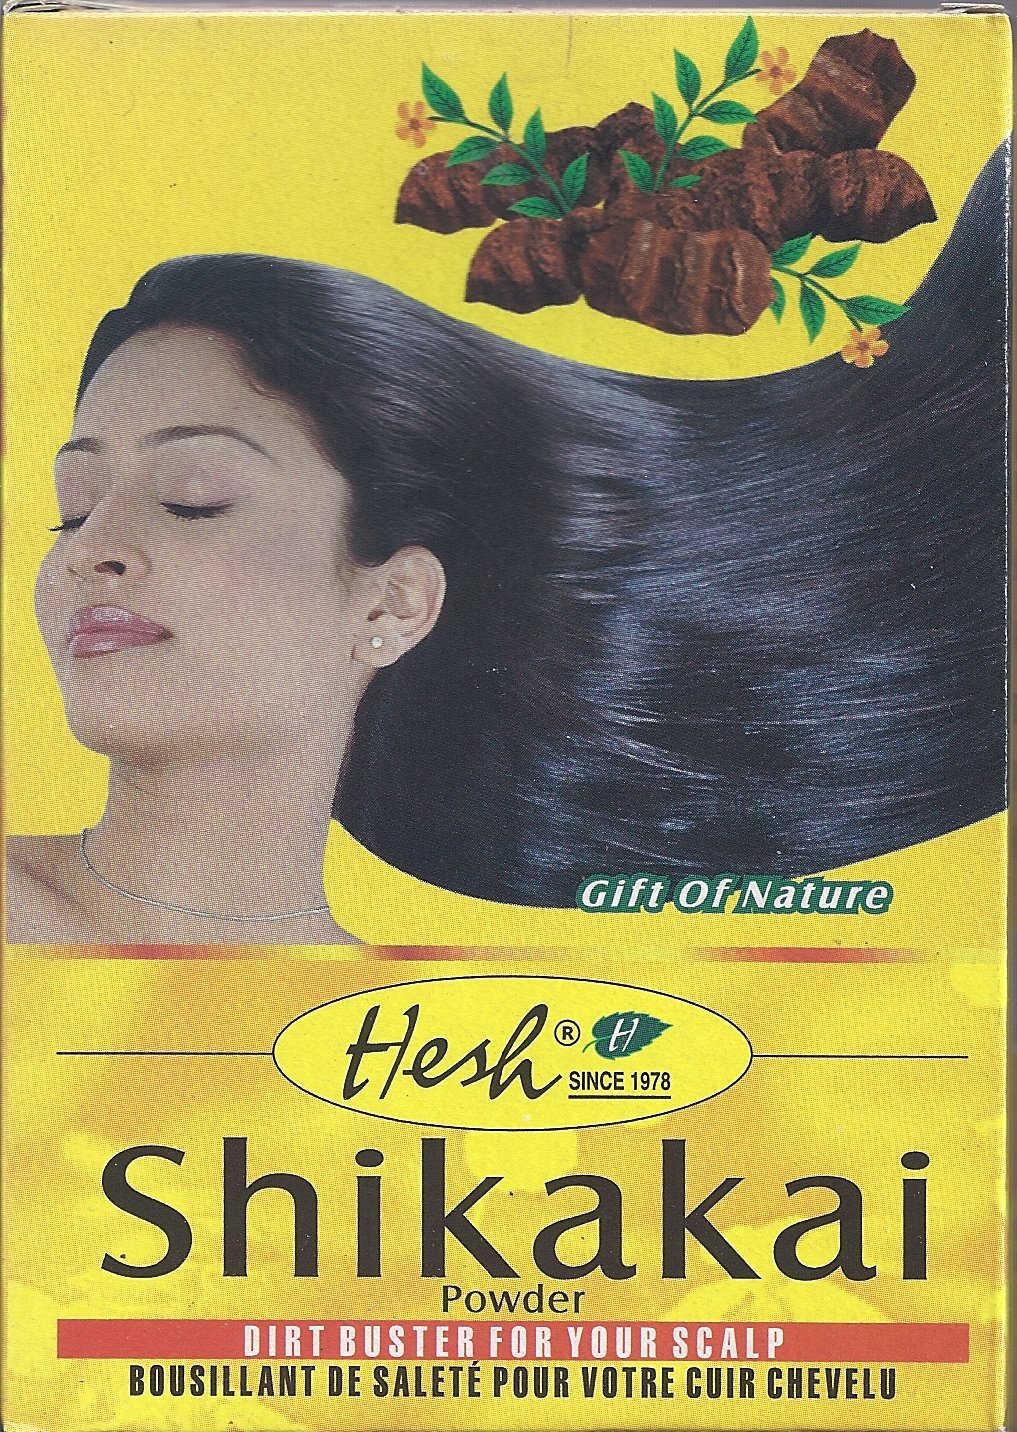 Shikakai Powder 3.5oz (100g) - Hesh Pharma (Pack of 6) by Hesh